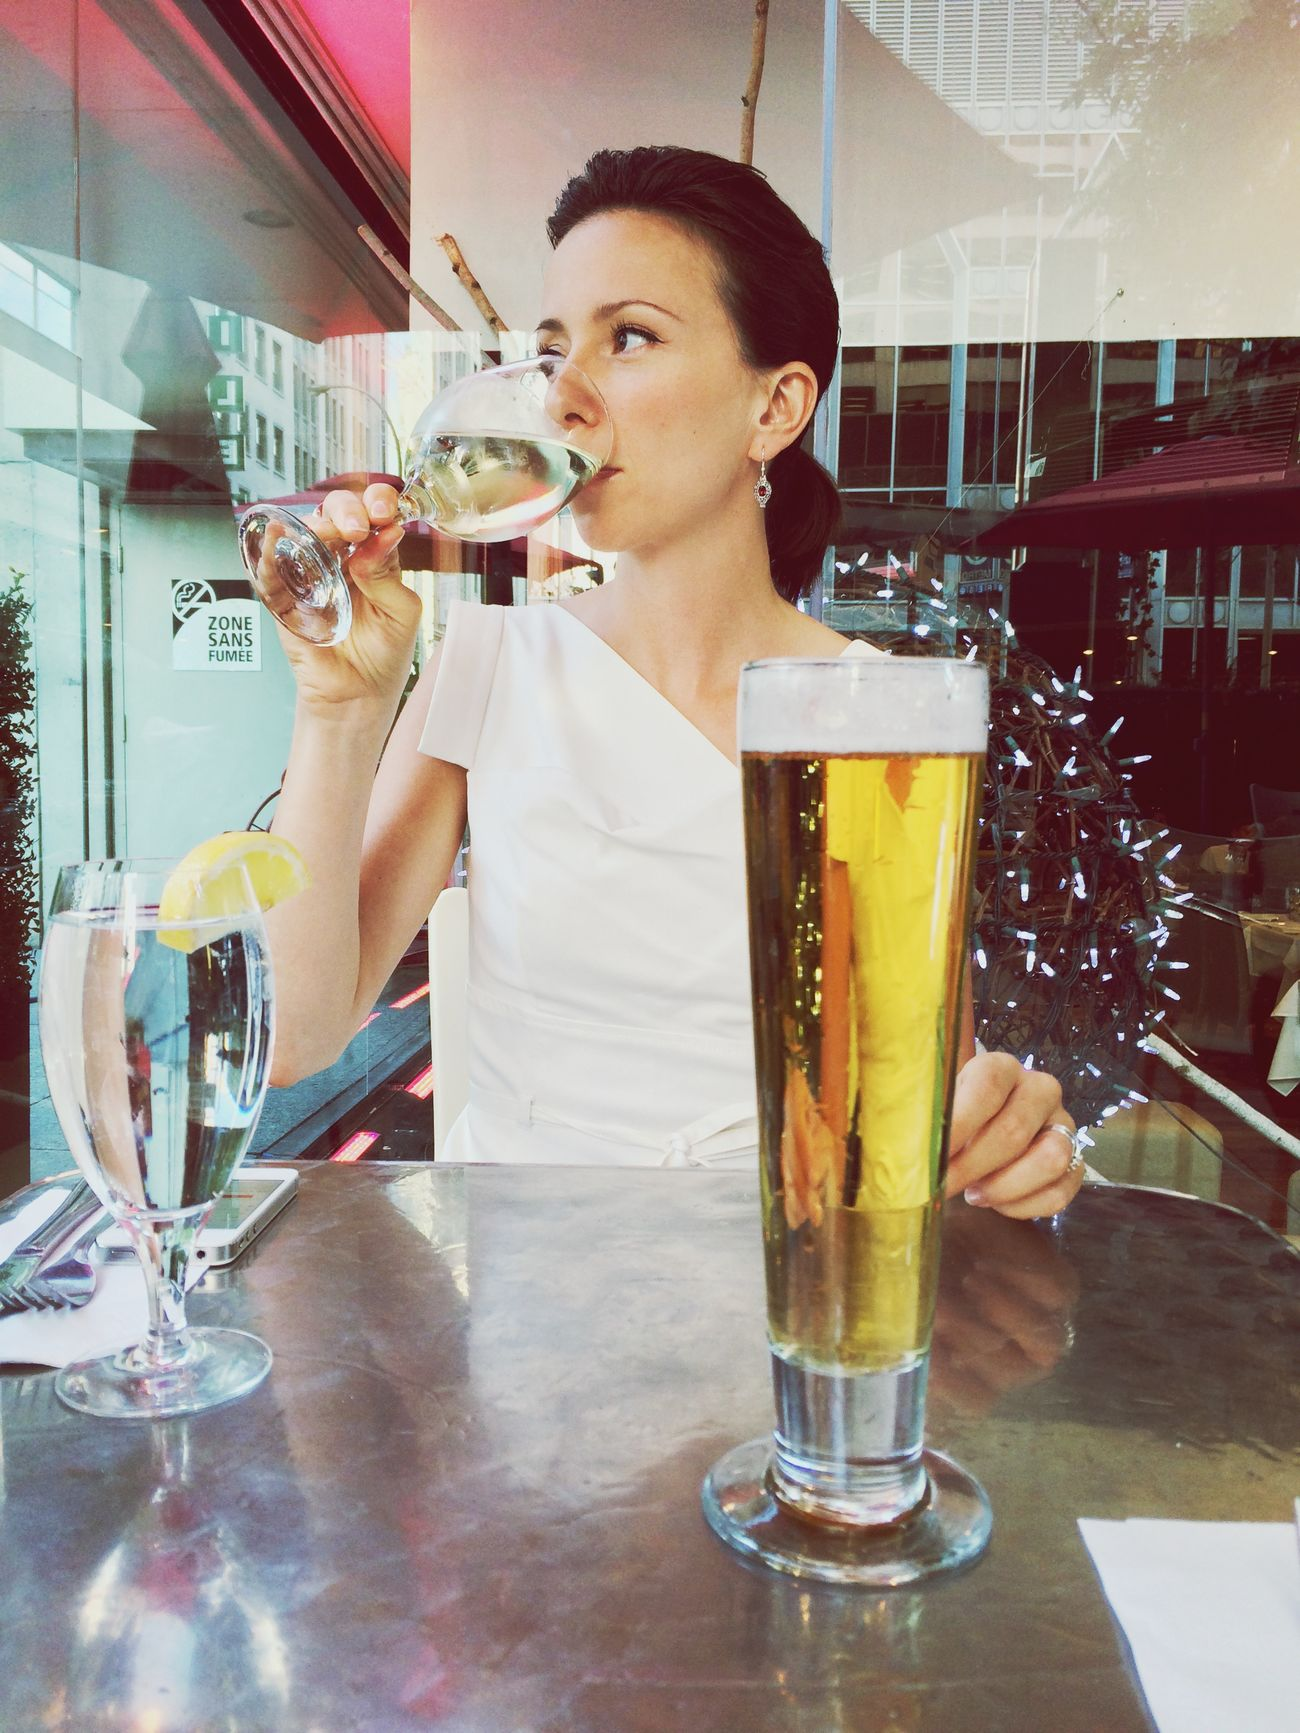 My muse, my wife, with wine and beer Terrace Family Summer Montréal Quebec Canada The Week On EyeEm